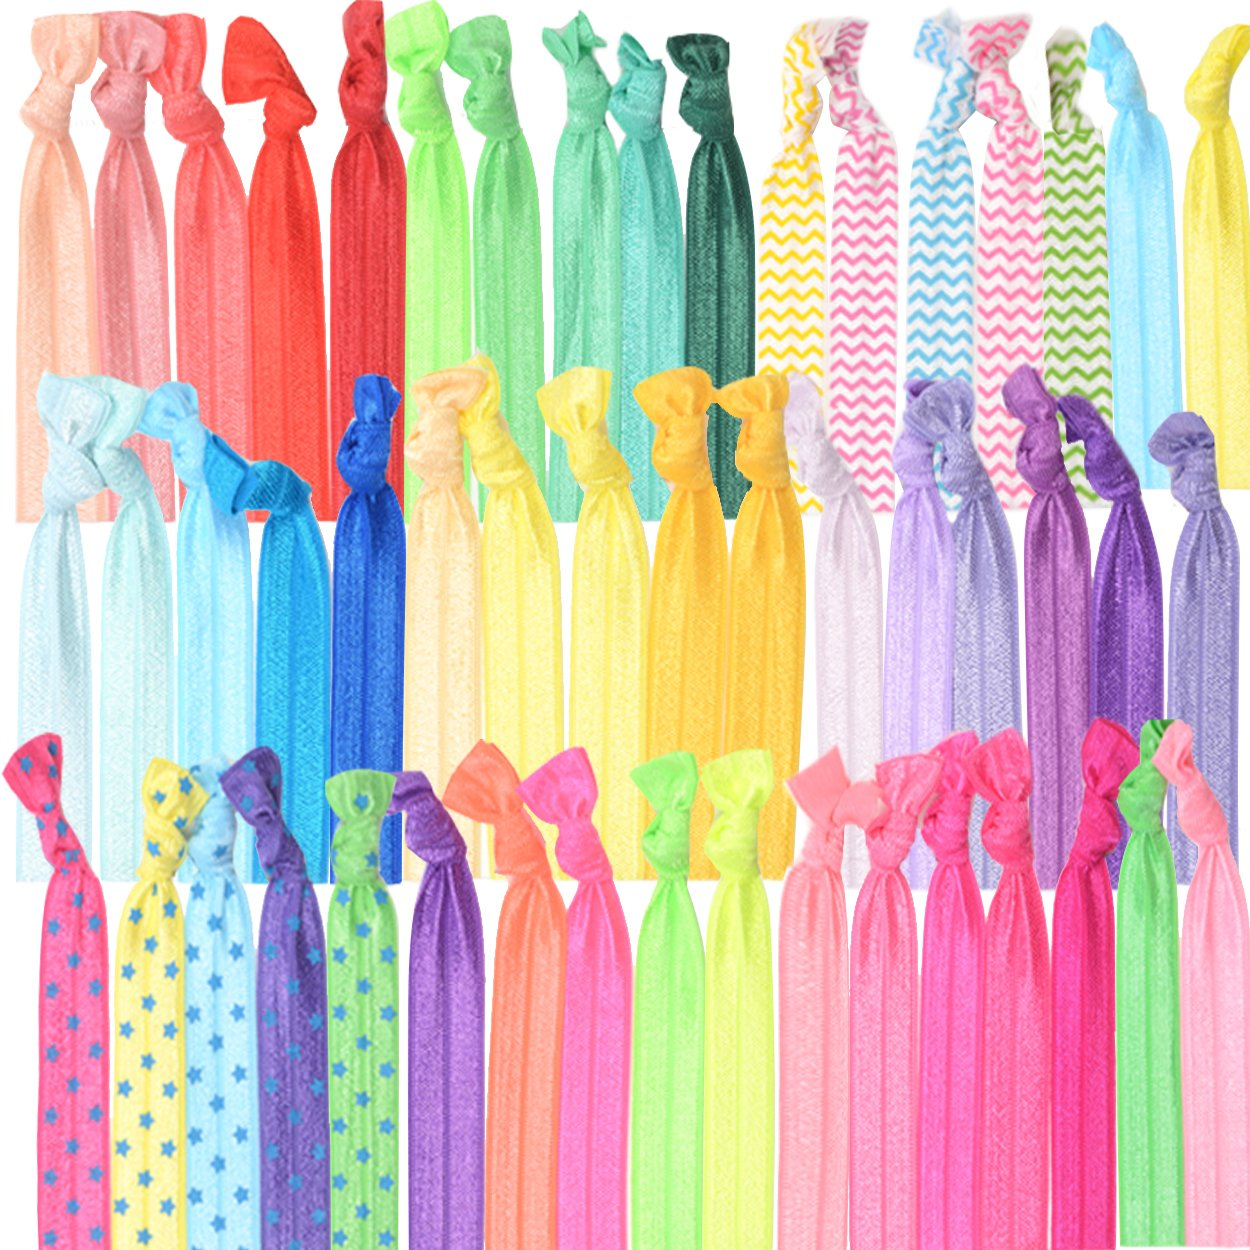 GirlZone: Colorful No Crease Hair Ties Accessories for Girls, Pack of 50, Great Party Bag Stuffer by GirlZone